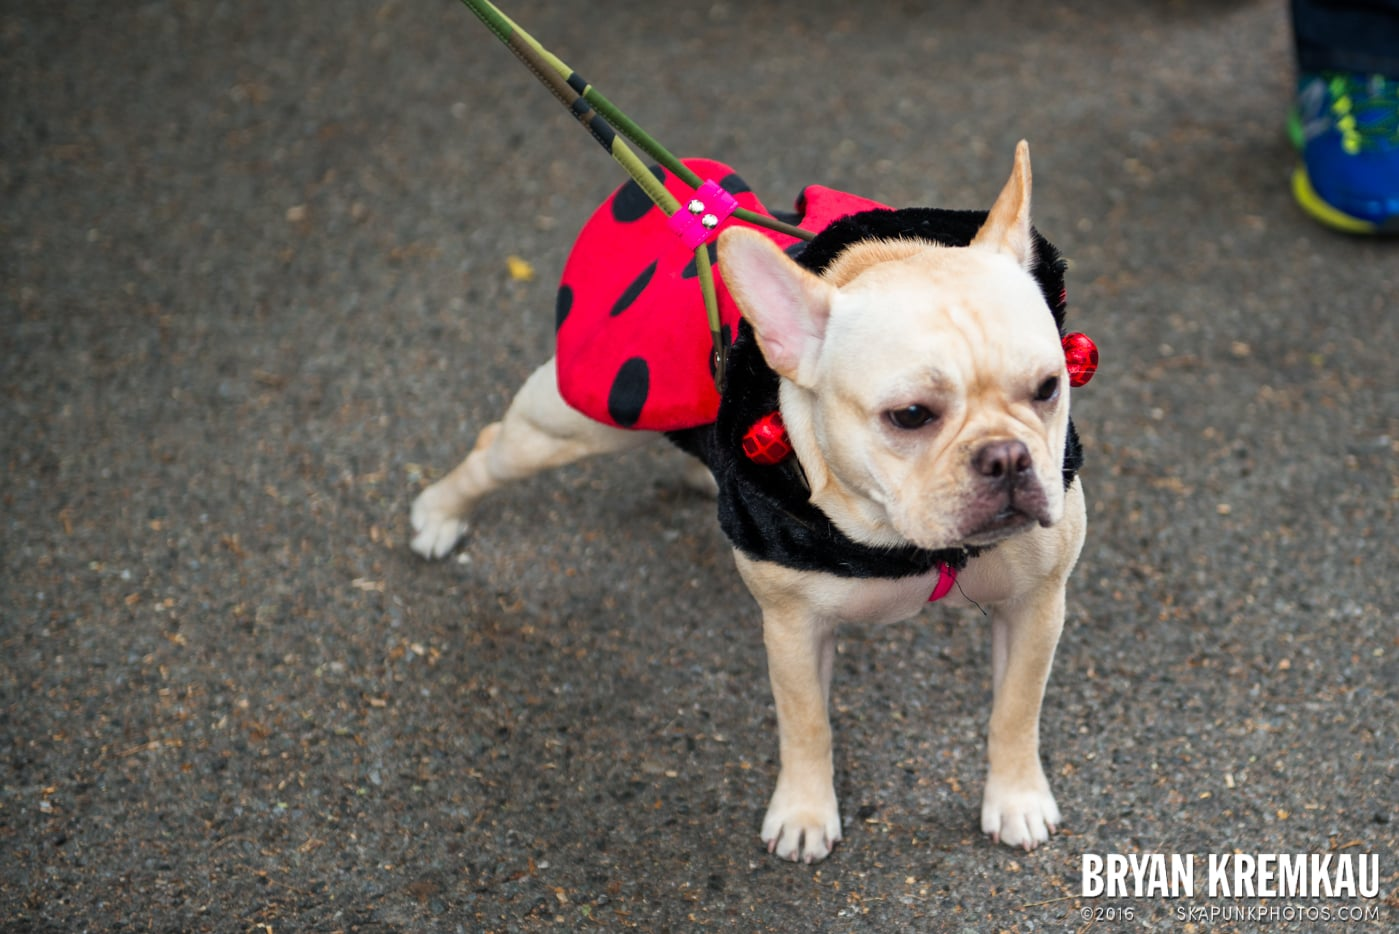 Tompkins Square Halloween Dog Parade 2015 @ Tompkins Square Park, NYC – 10.24.15 (15)